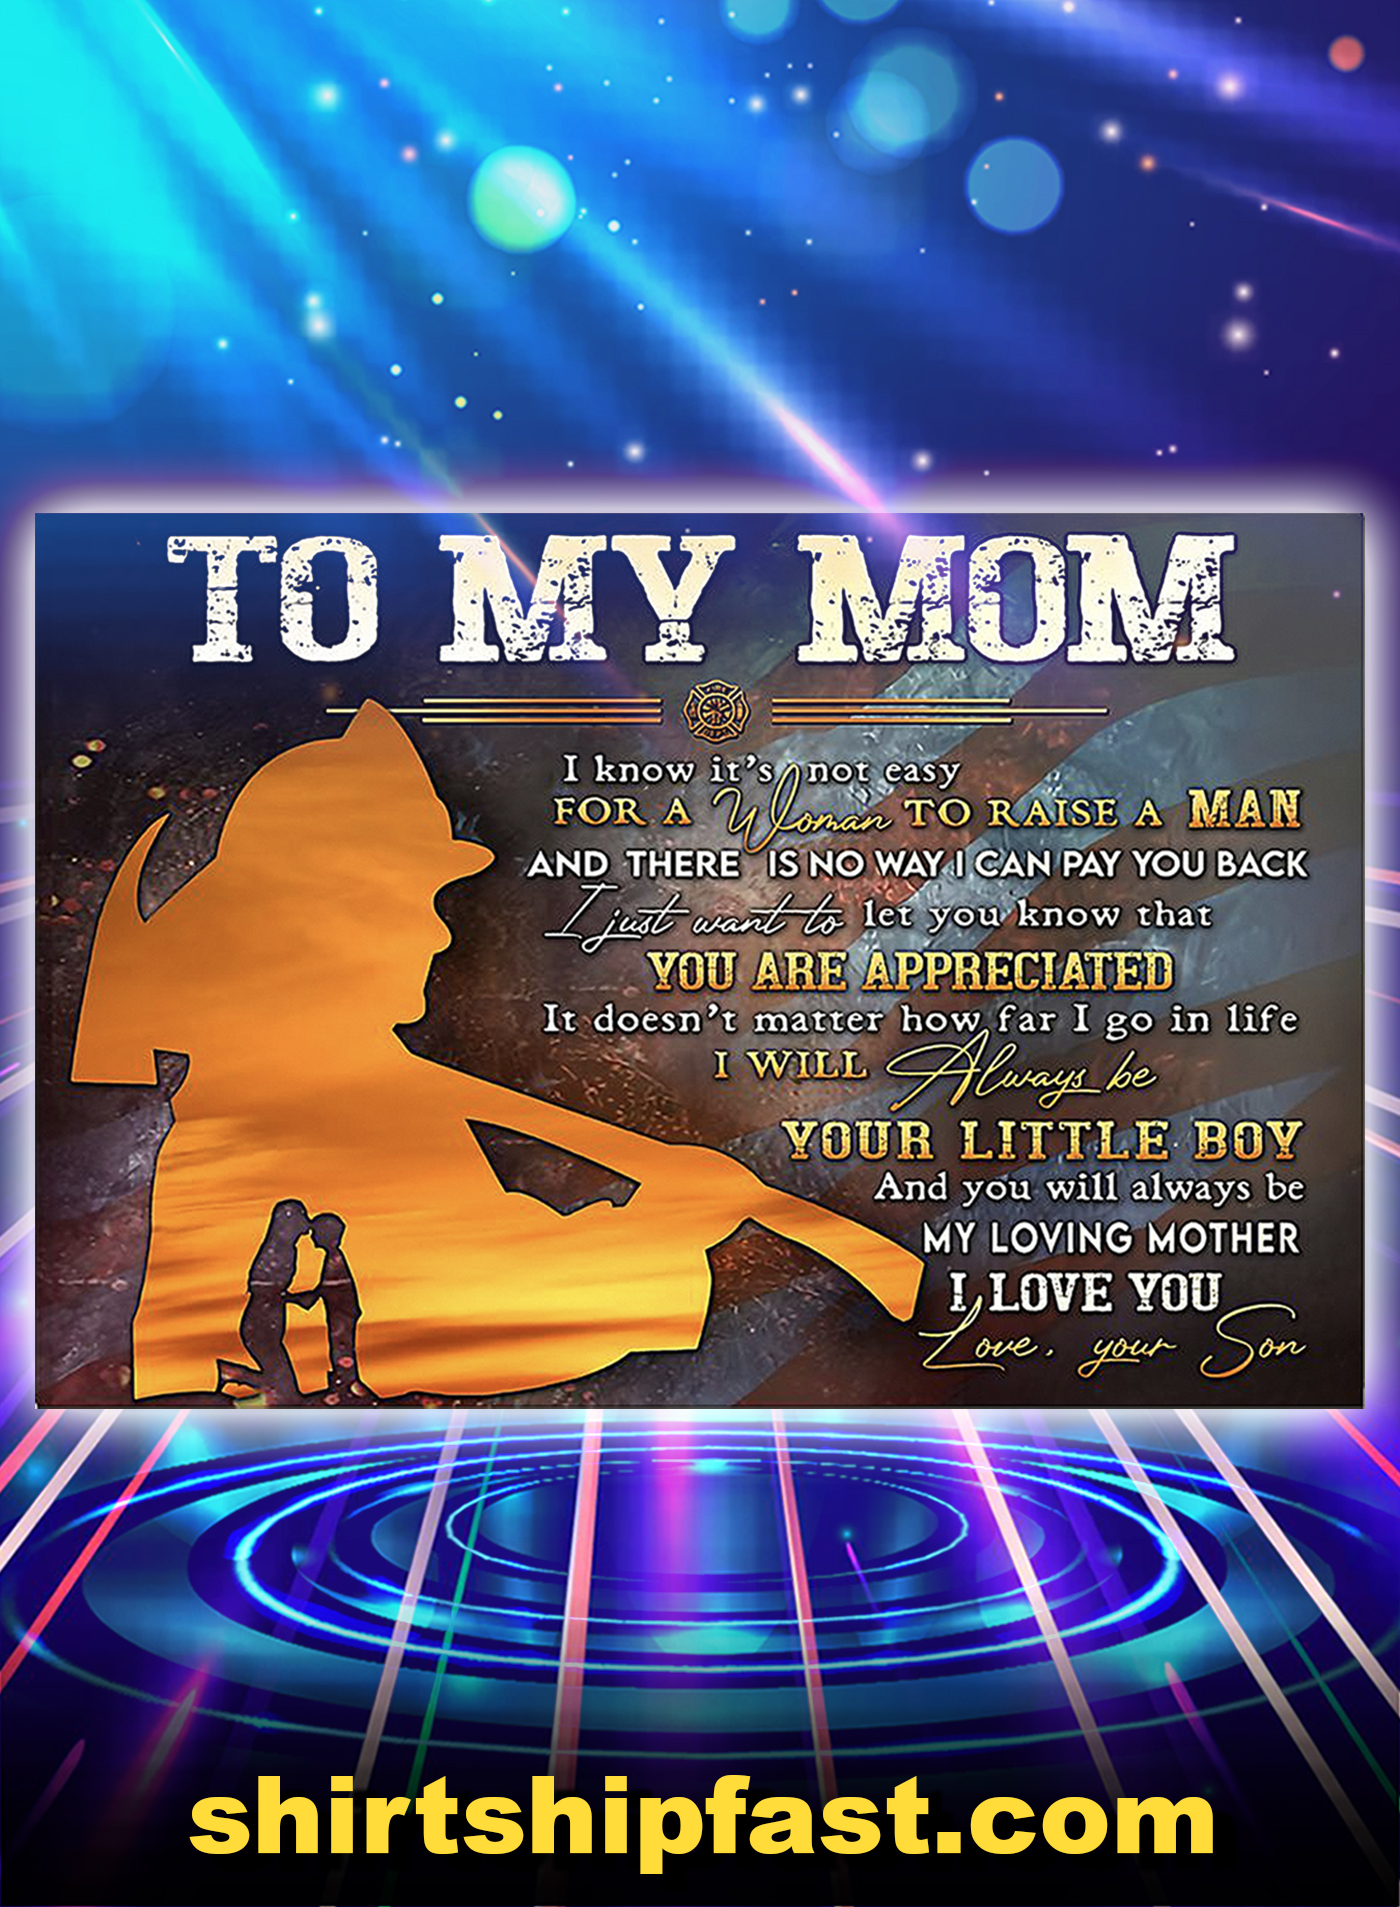 Firefighter to my mom love your son poster - A1